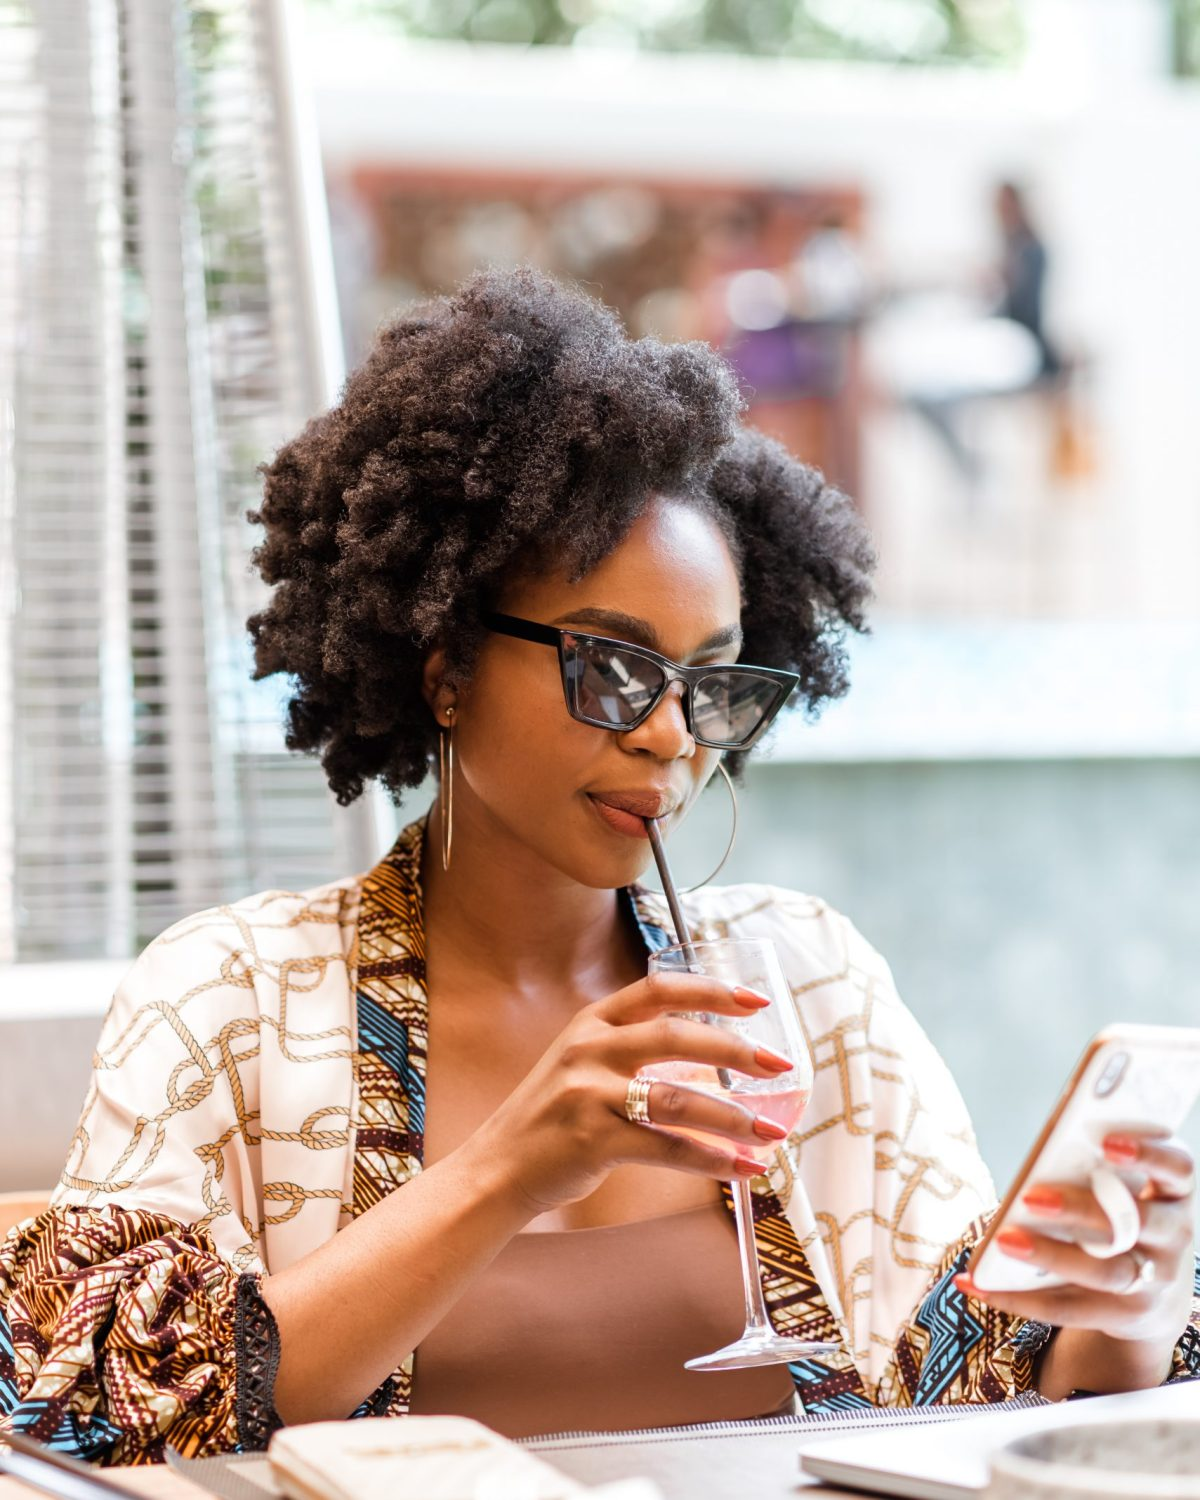 Ijeoma Kola scrolling on phone with sunglasses on and cocktail in hand